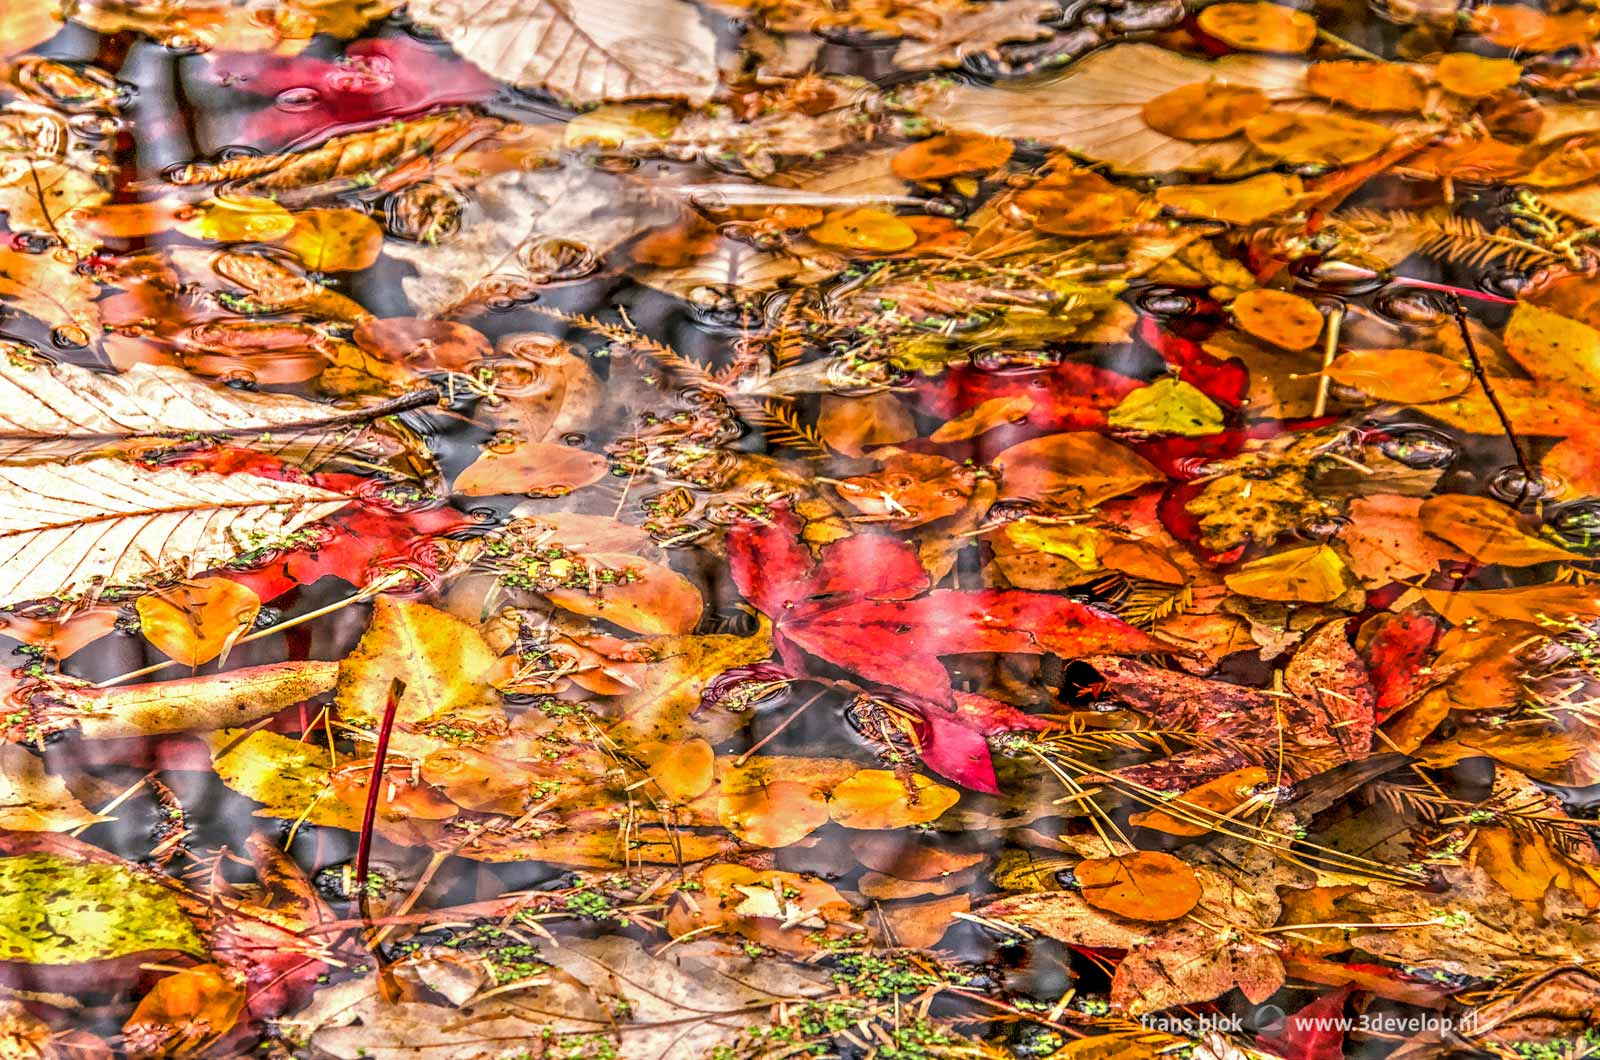 Collage of fallen autumn leaves, most of them red, brown or yellow, in a pond in november